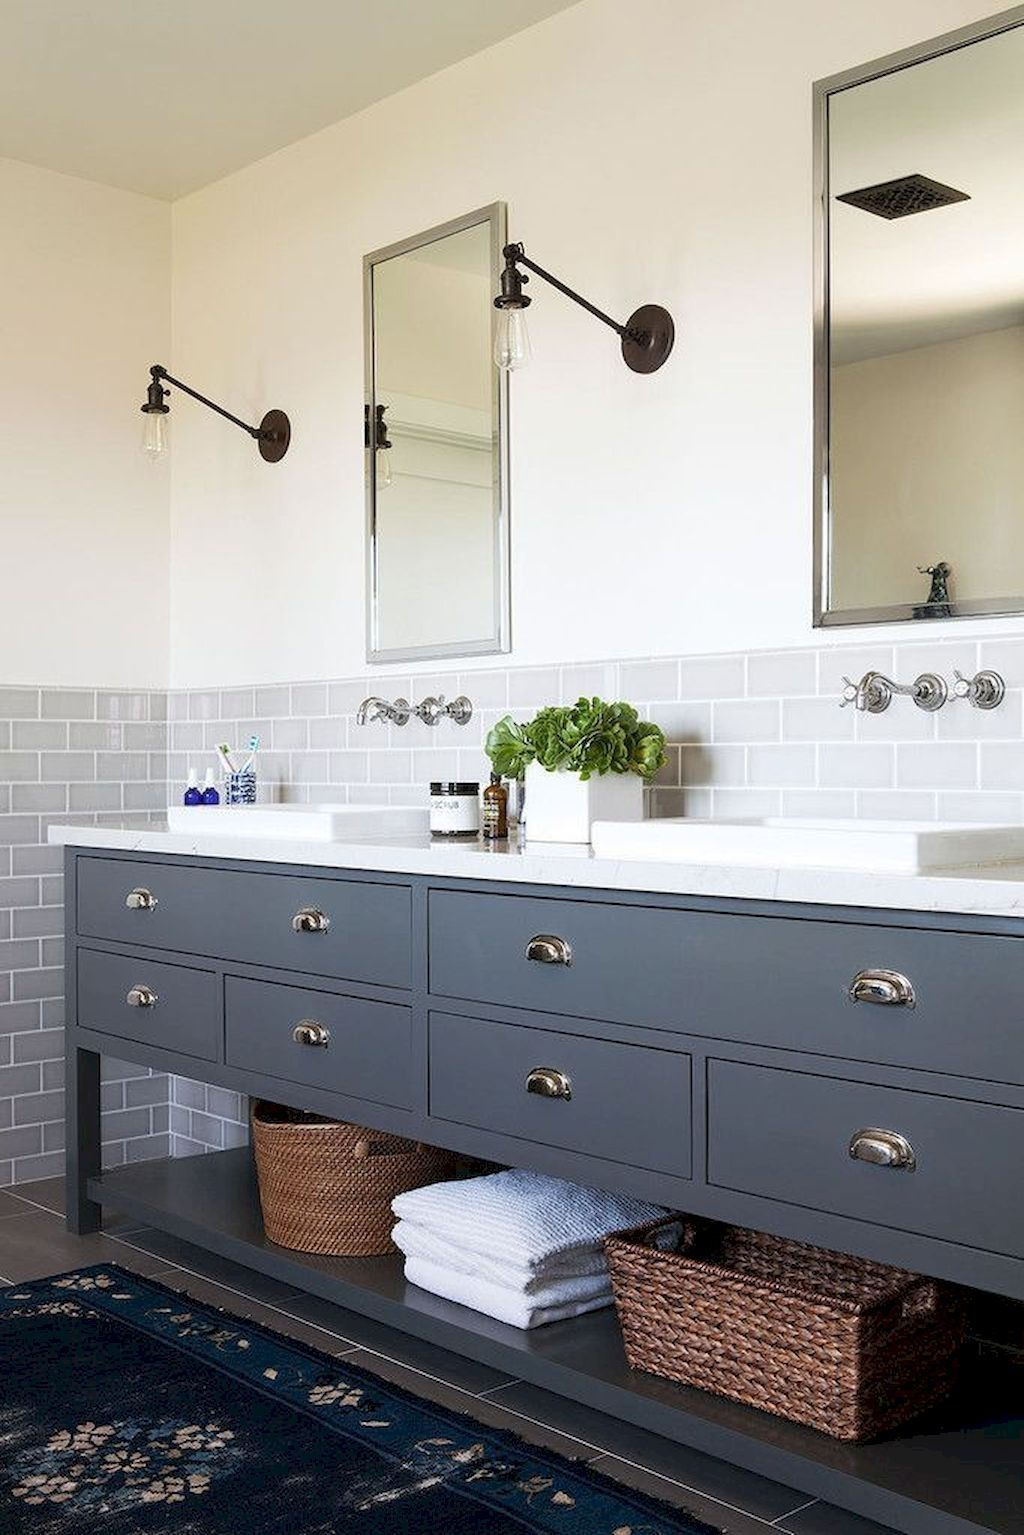 99 Modern Farmhouse Bathroom Vanity Design Ideas | Modern farmhouse ...